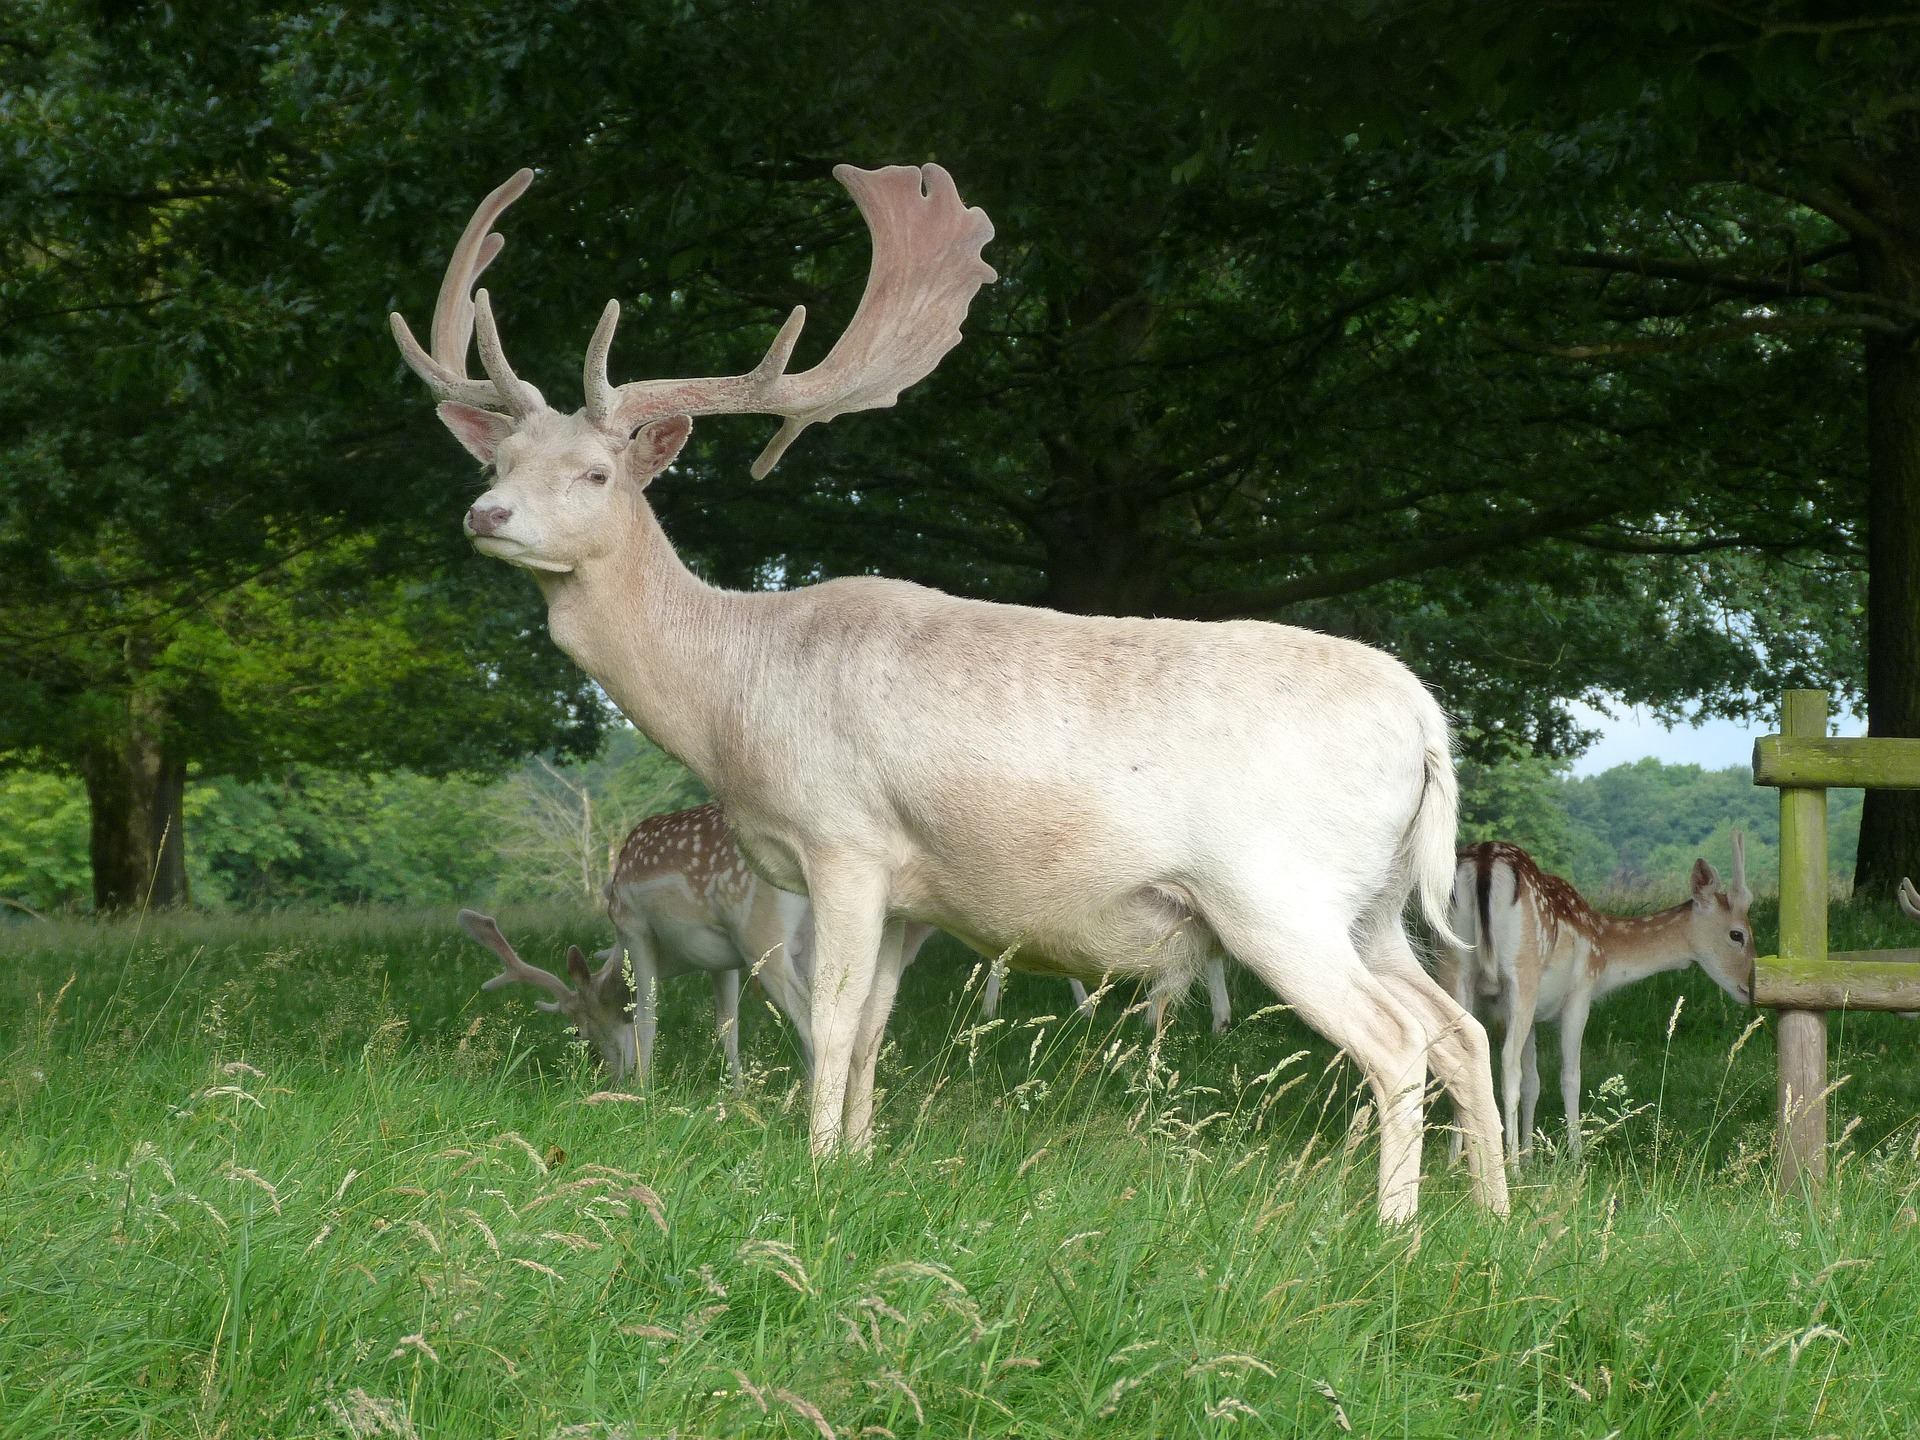 a white stag - regarded as a sacred animal by many